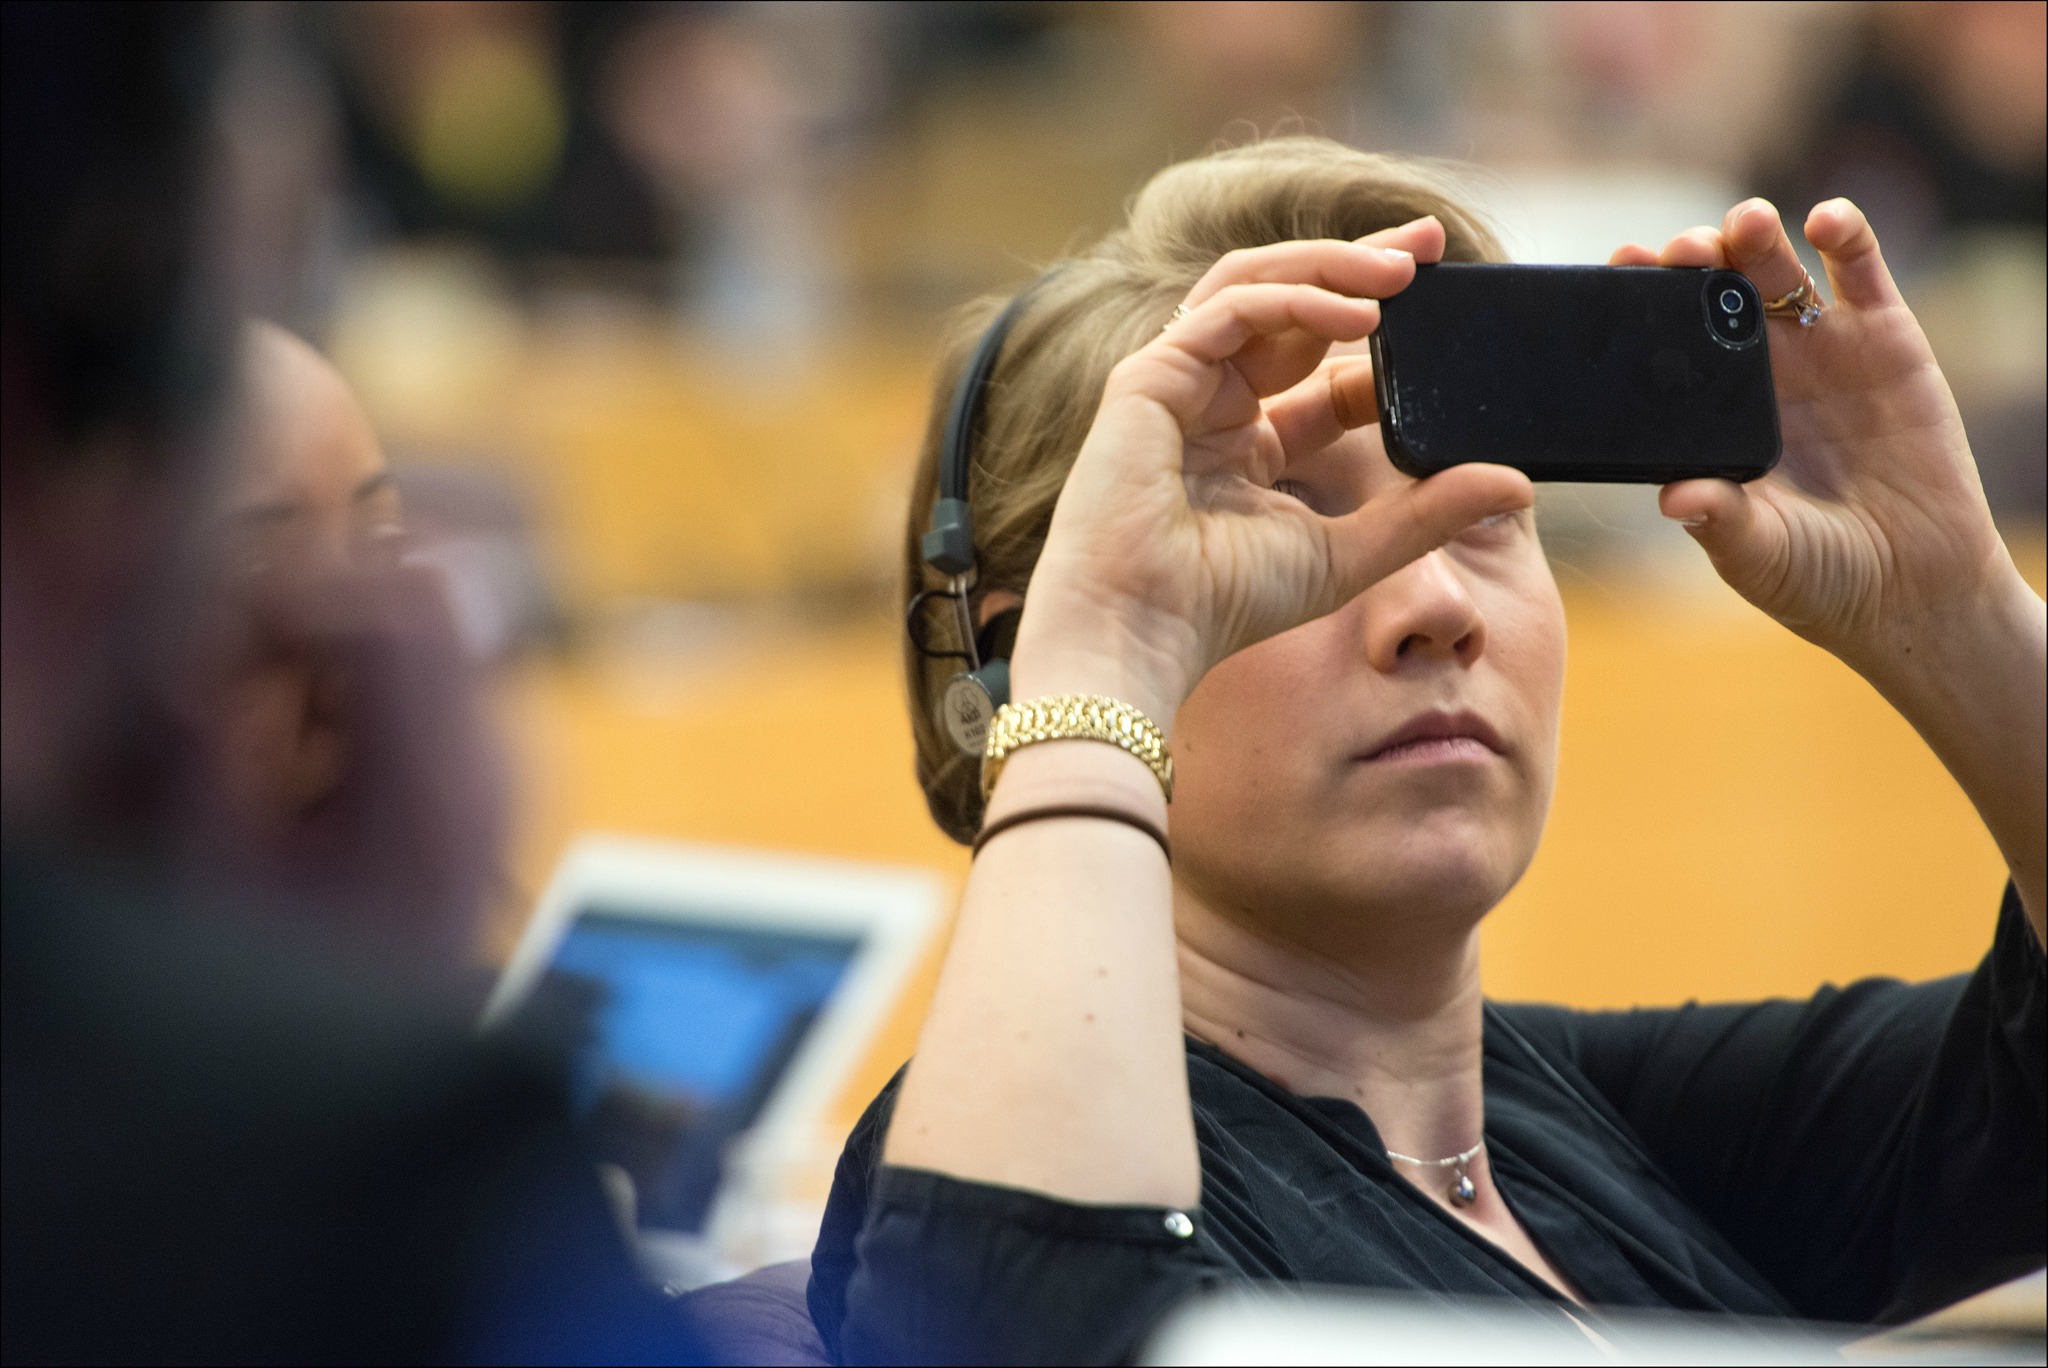 Selfie at the European Parliament [European Parliament]